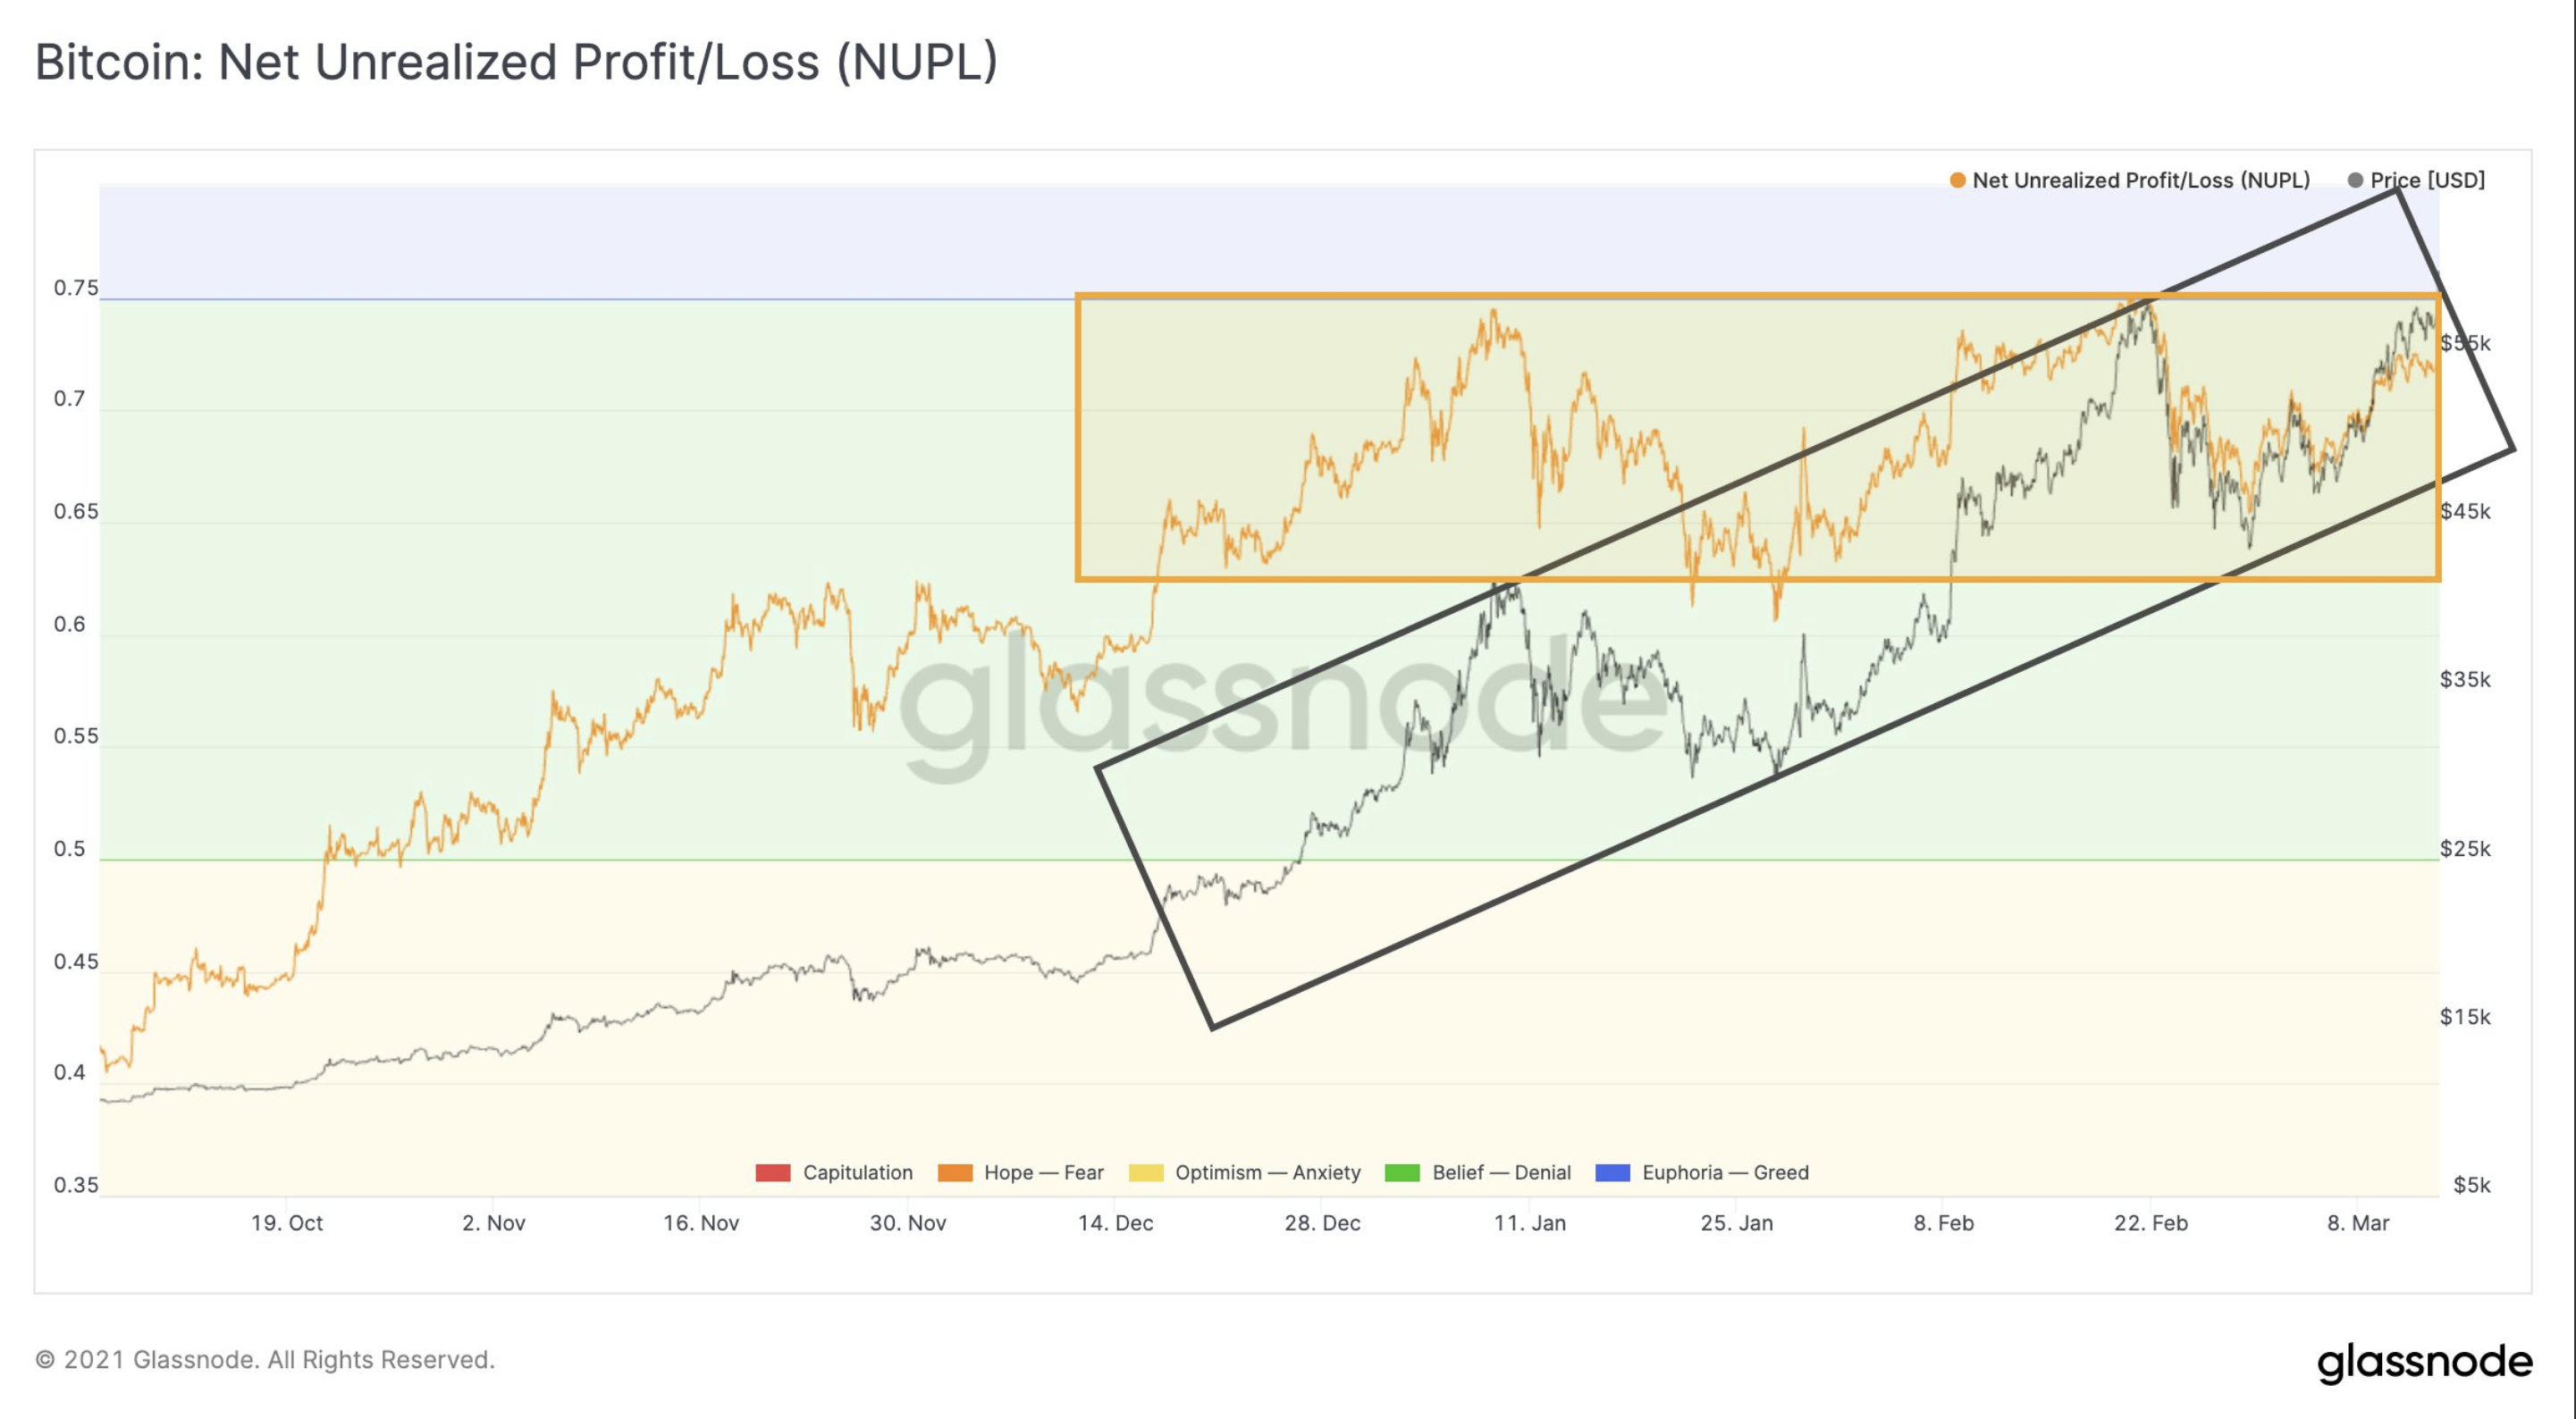 BTC's Net Unrealized Profit/Loss (NUPL)